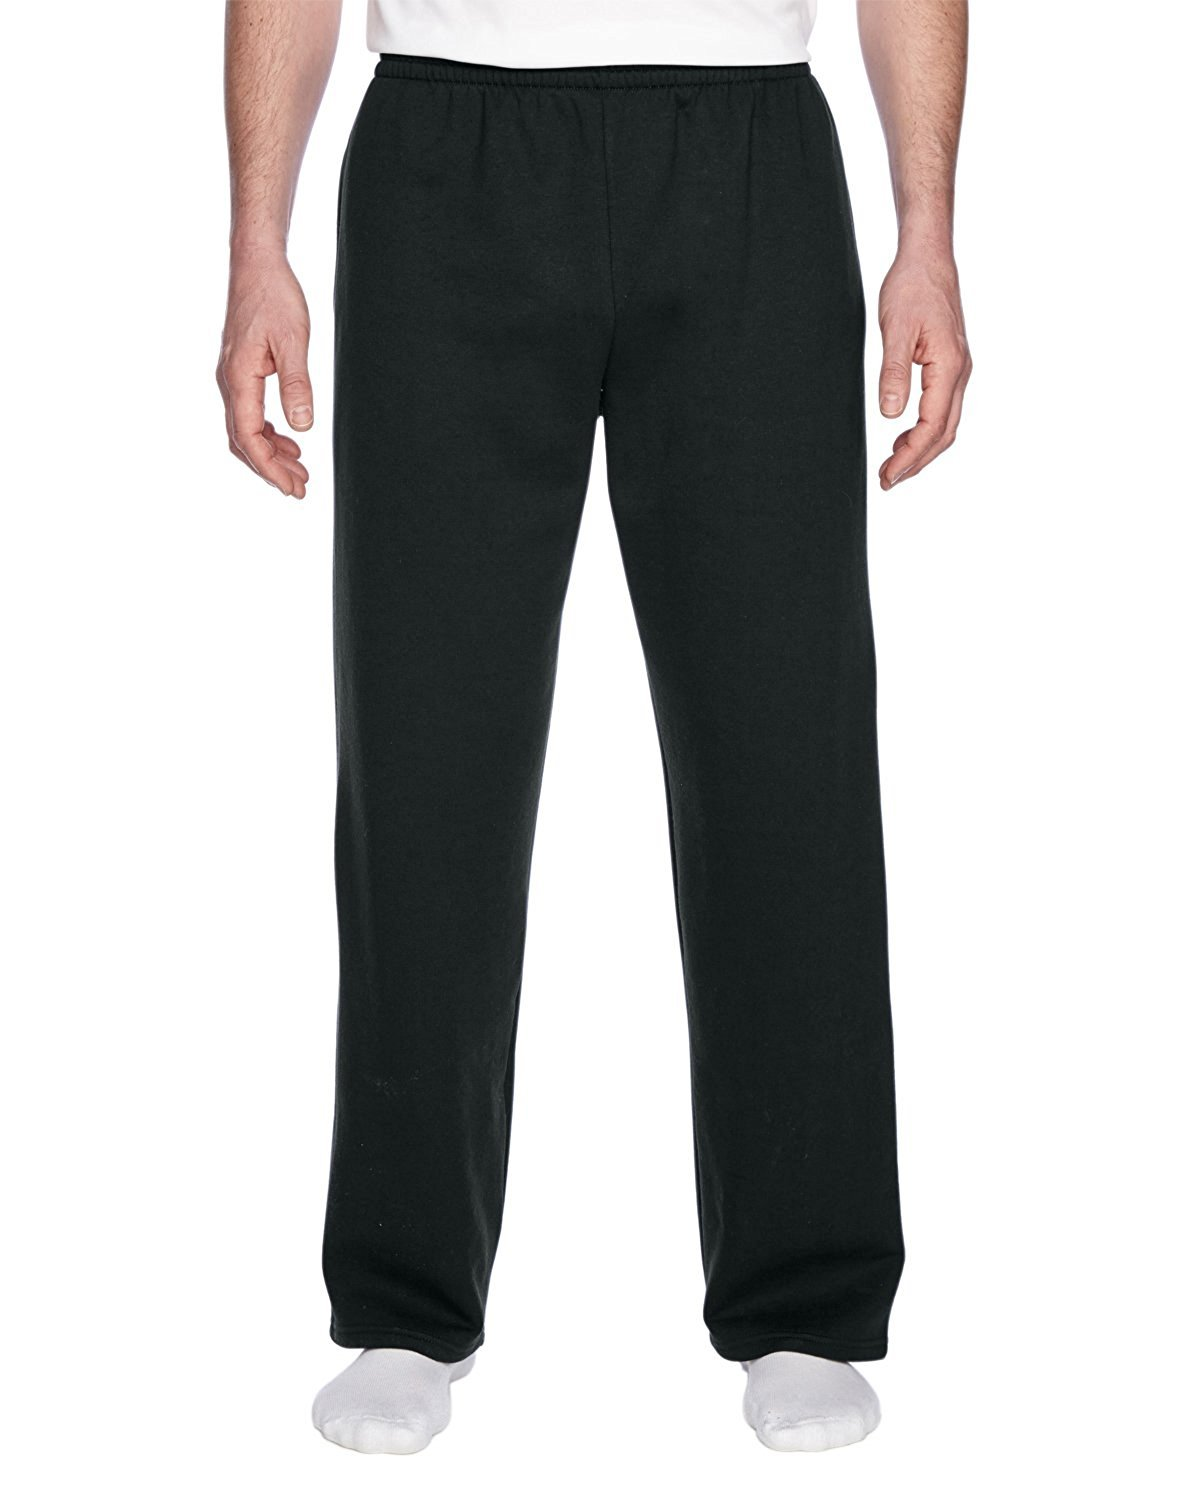 Fruit of the Loom Best Collection™ Men's Fleece Elastic Bottom Pant Medium Black